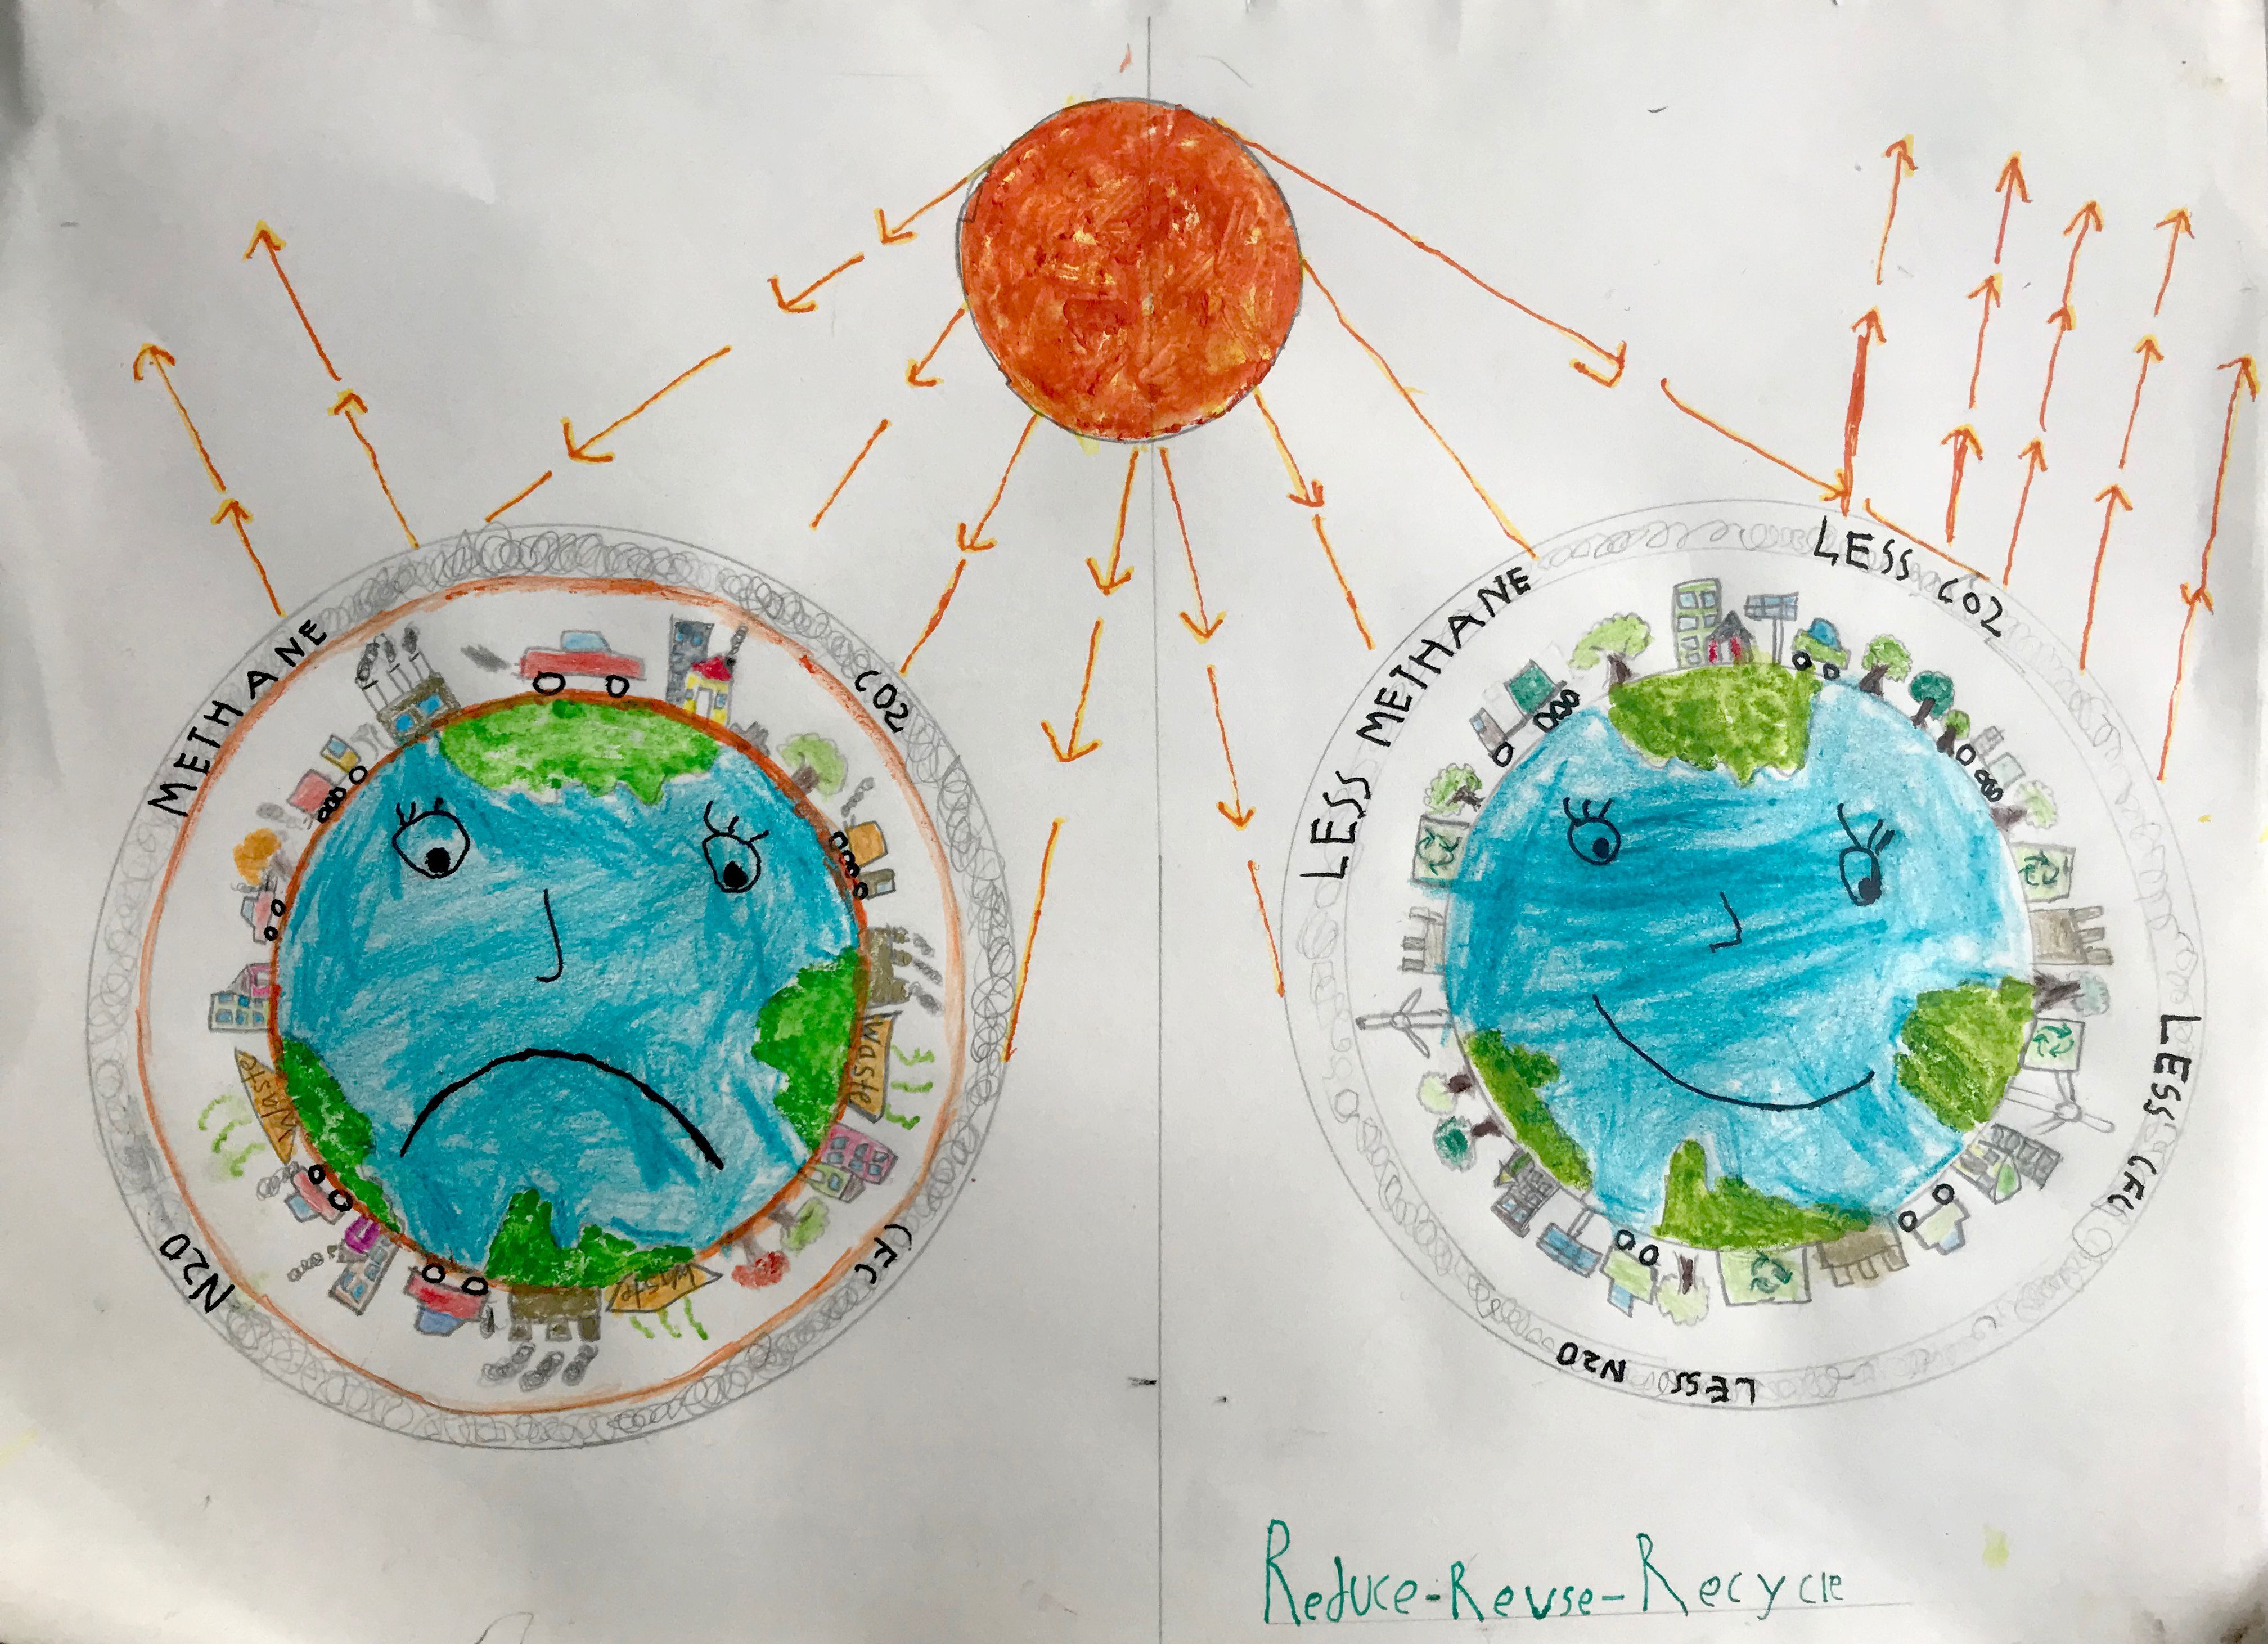 ESA - Space for Kids - Climate change contest winners selected